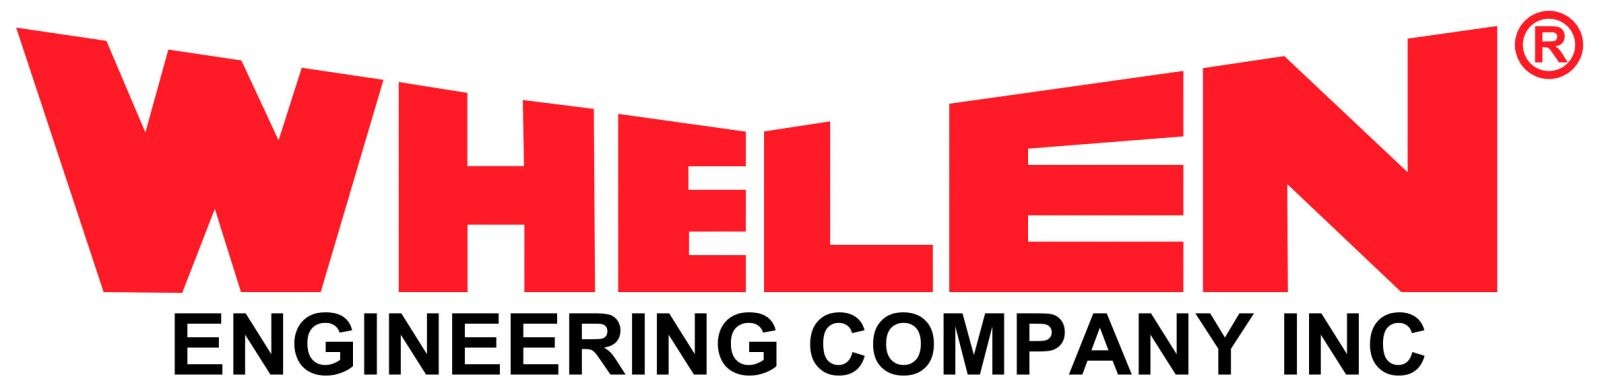 Whelen Engineering Company Inc logo